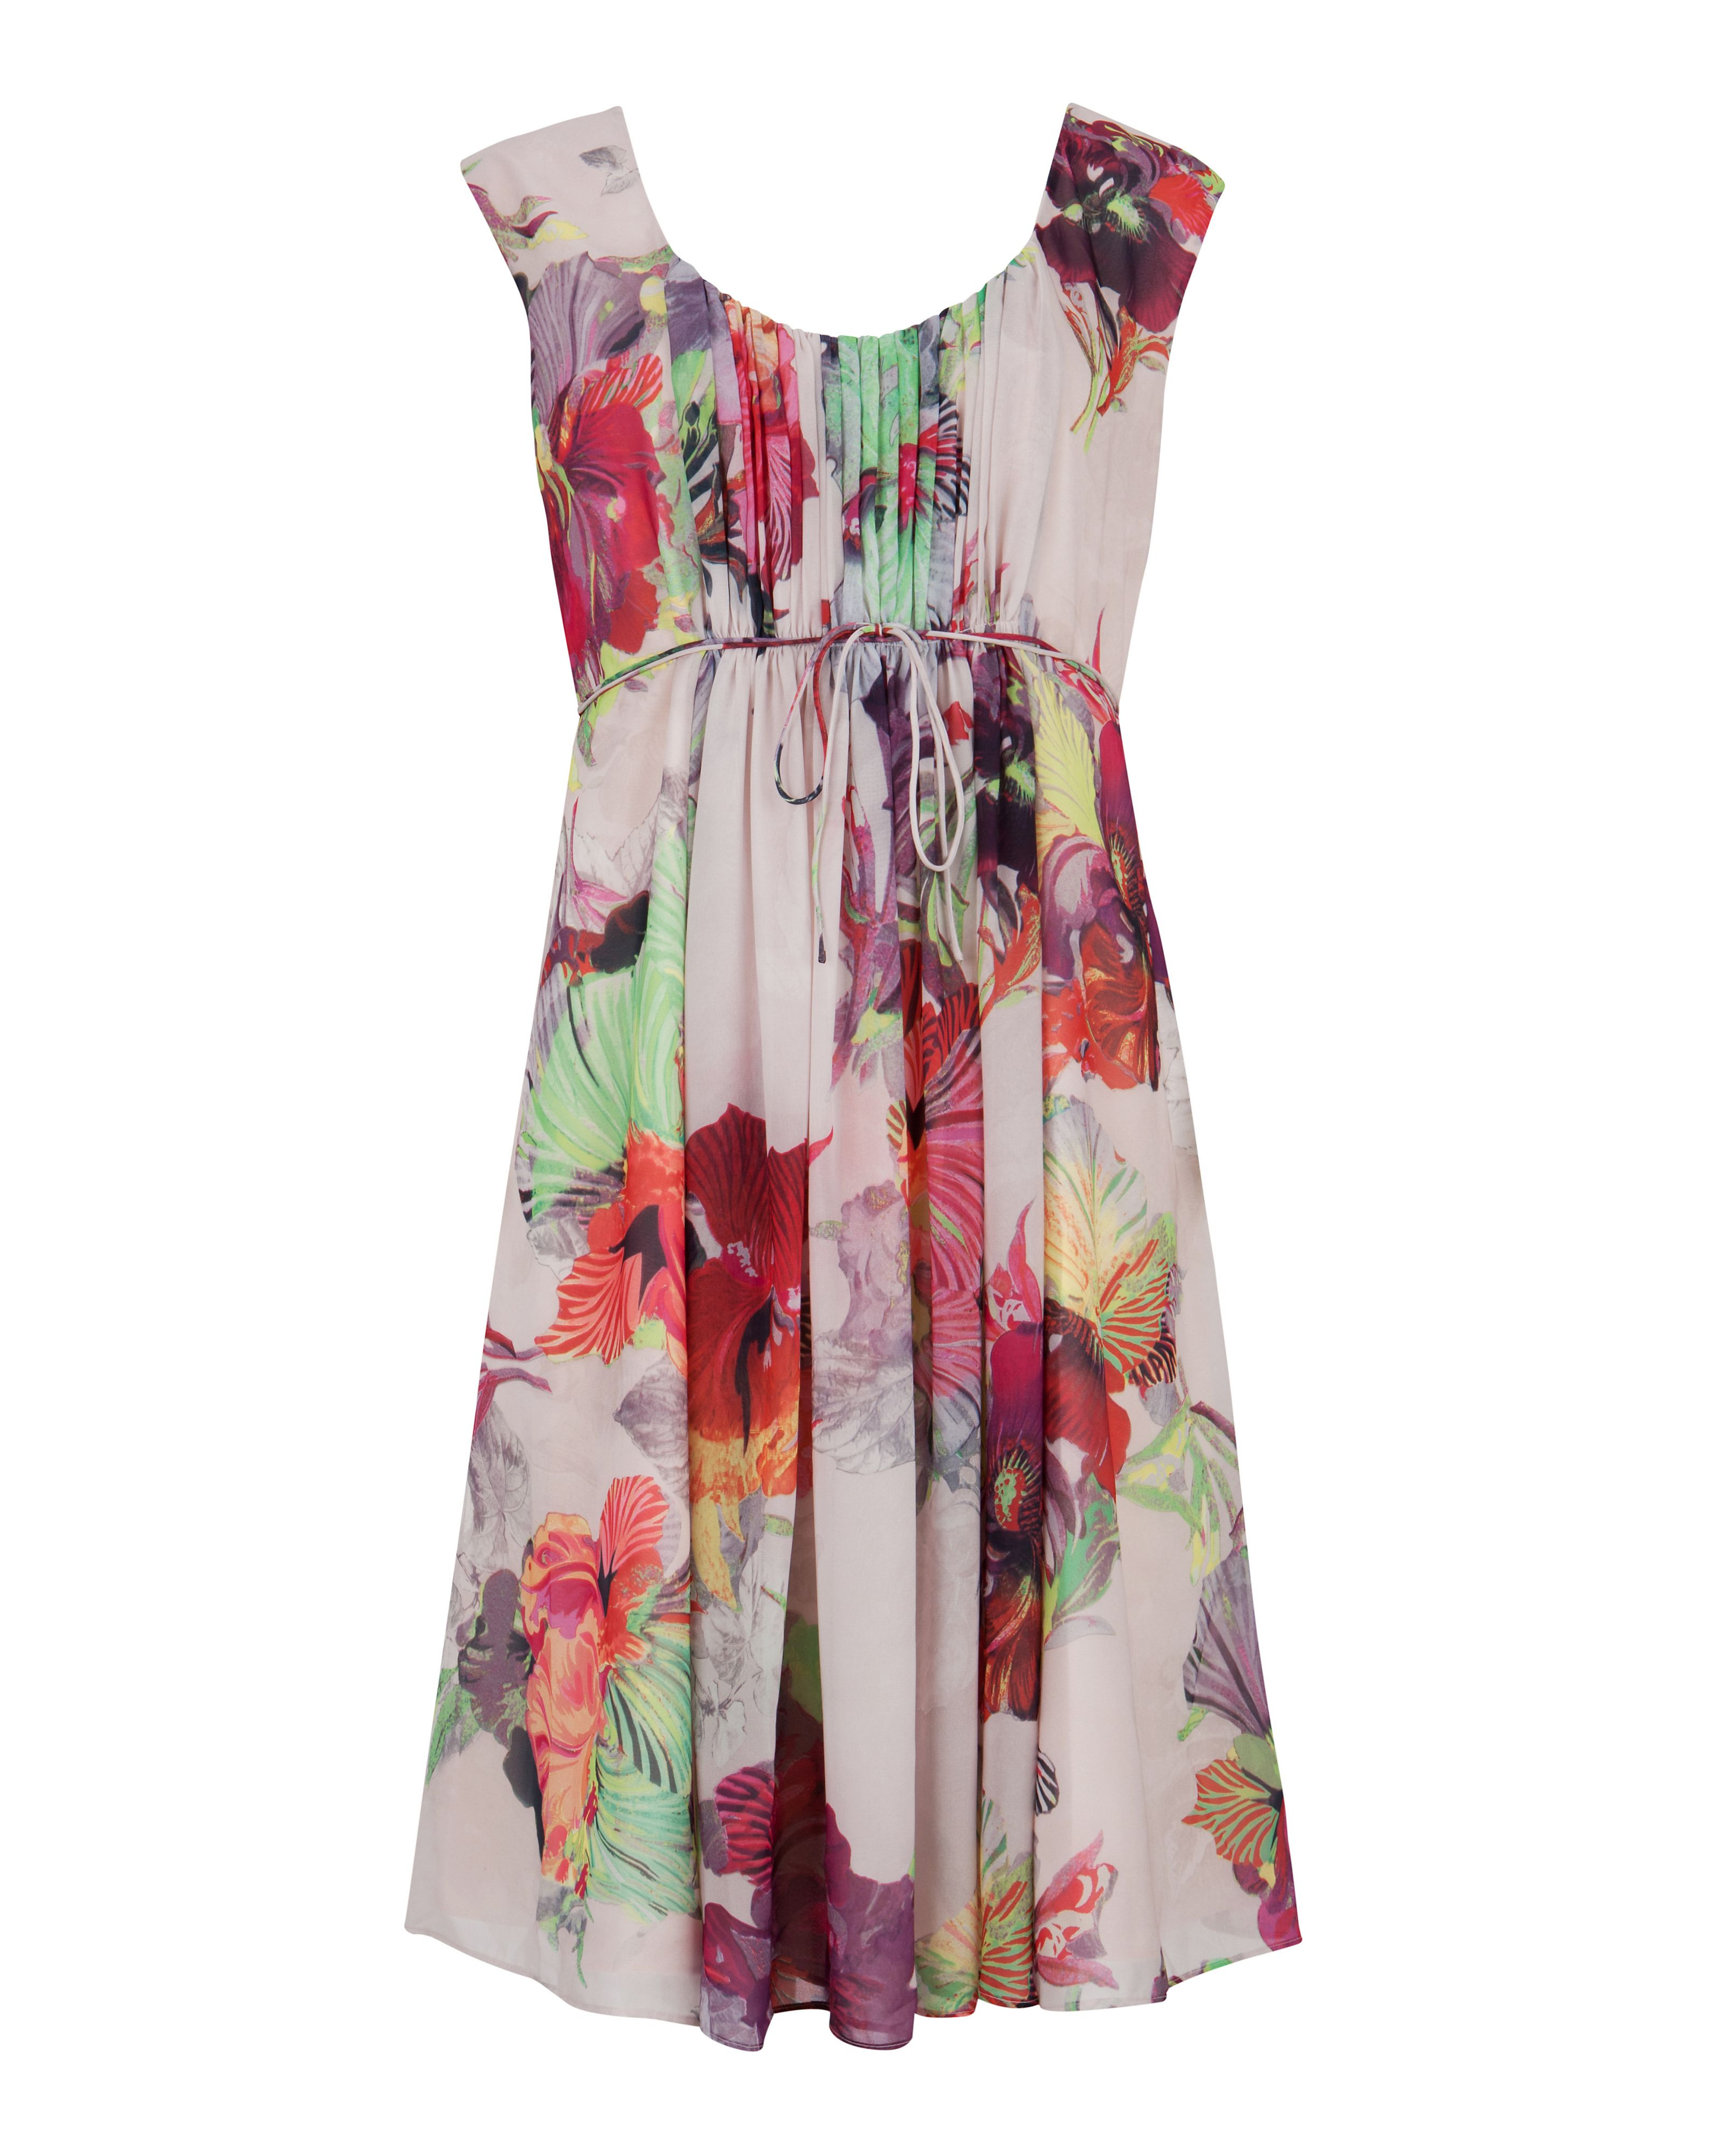 Amaran treasured orchid print dress